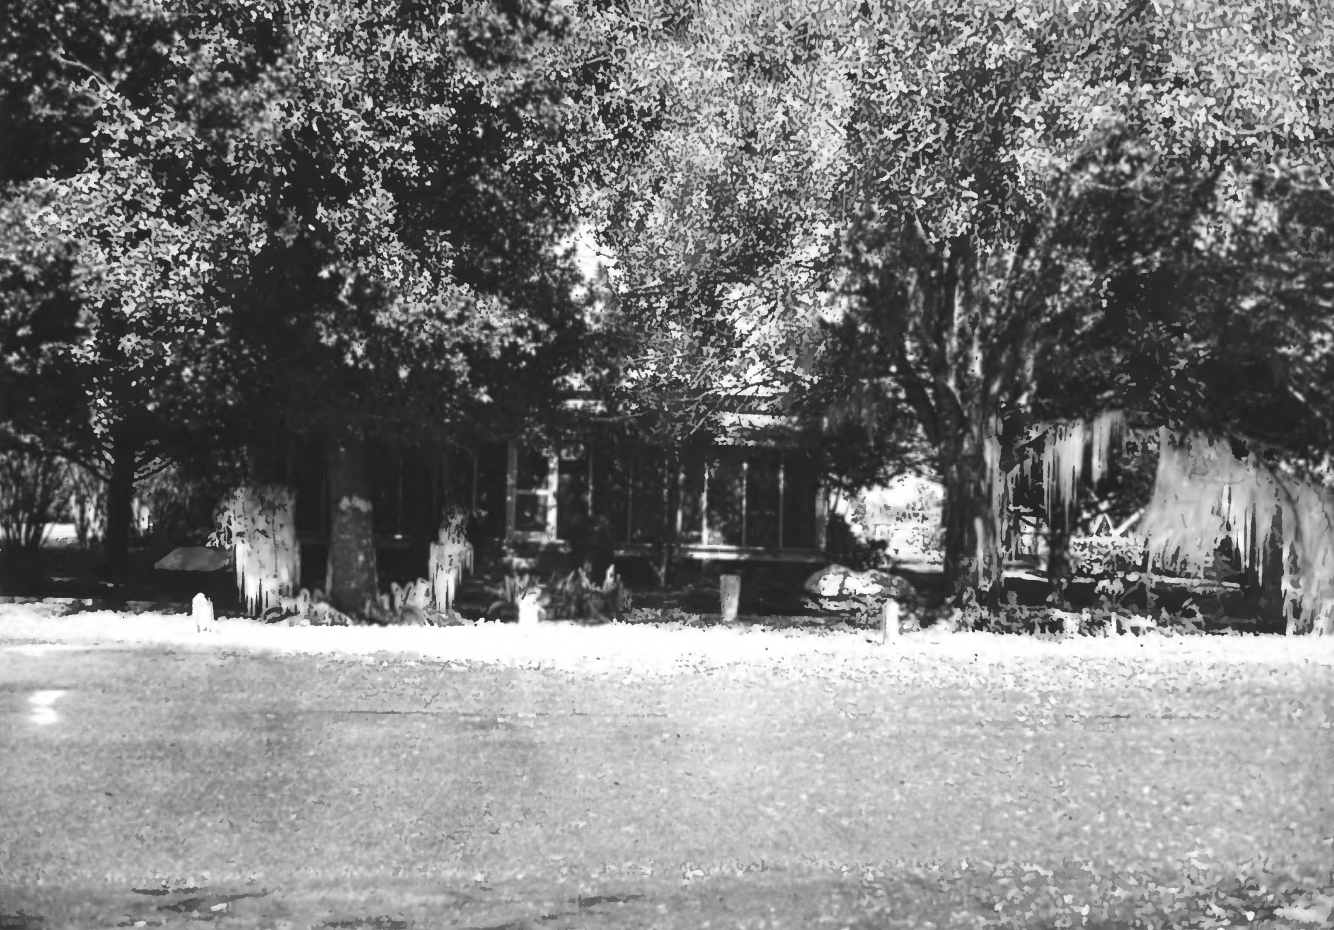 Photo from national register of historic places, taken in 1990.